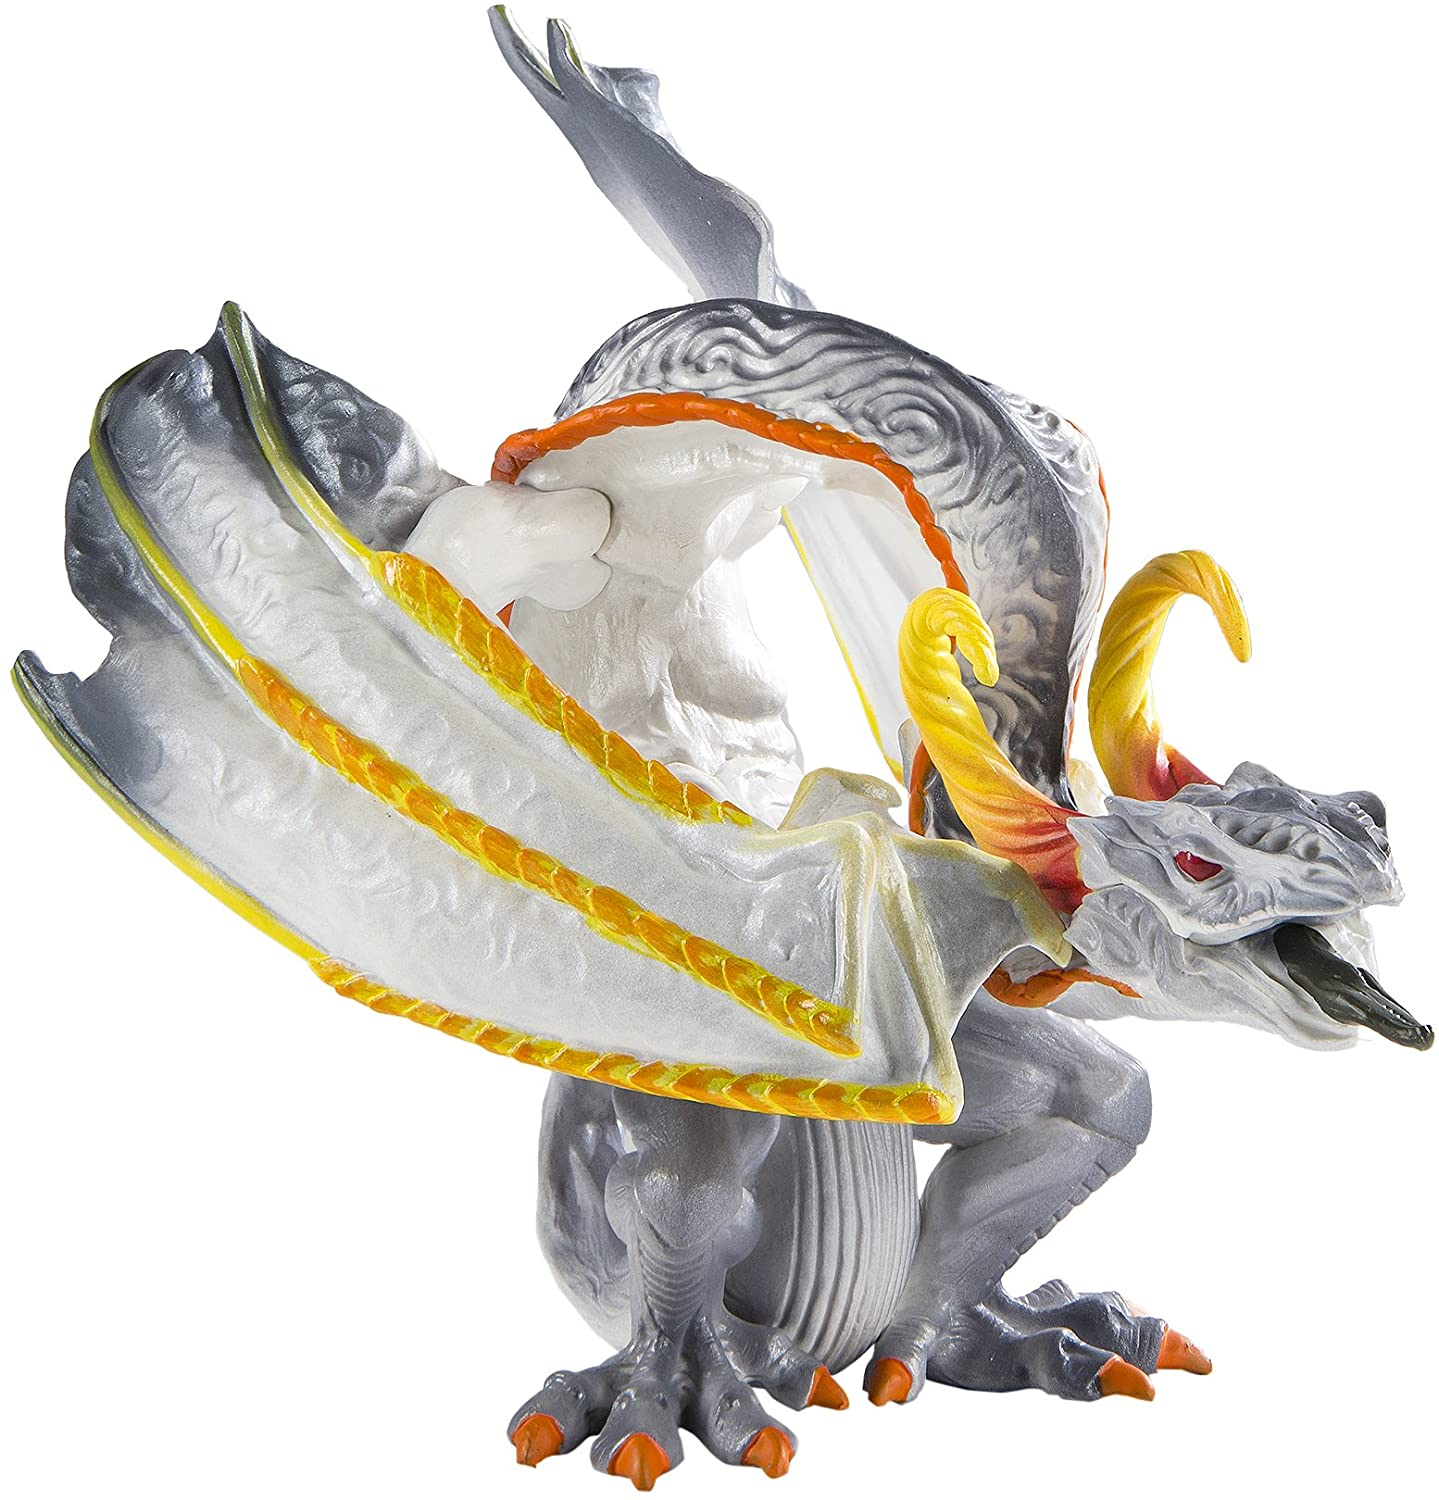 Safari Ltd - Smoke Dragon - Realistic Hand Painted Toy Figurine Model - Quality Construction from Safe and BPA Free Materials - for Ages 3 and Up